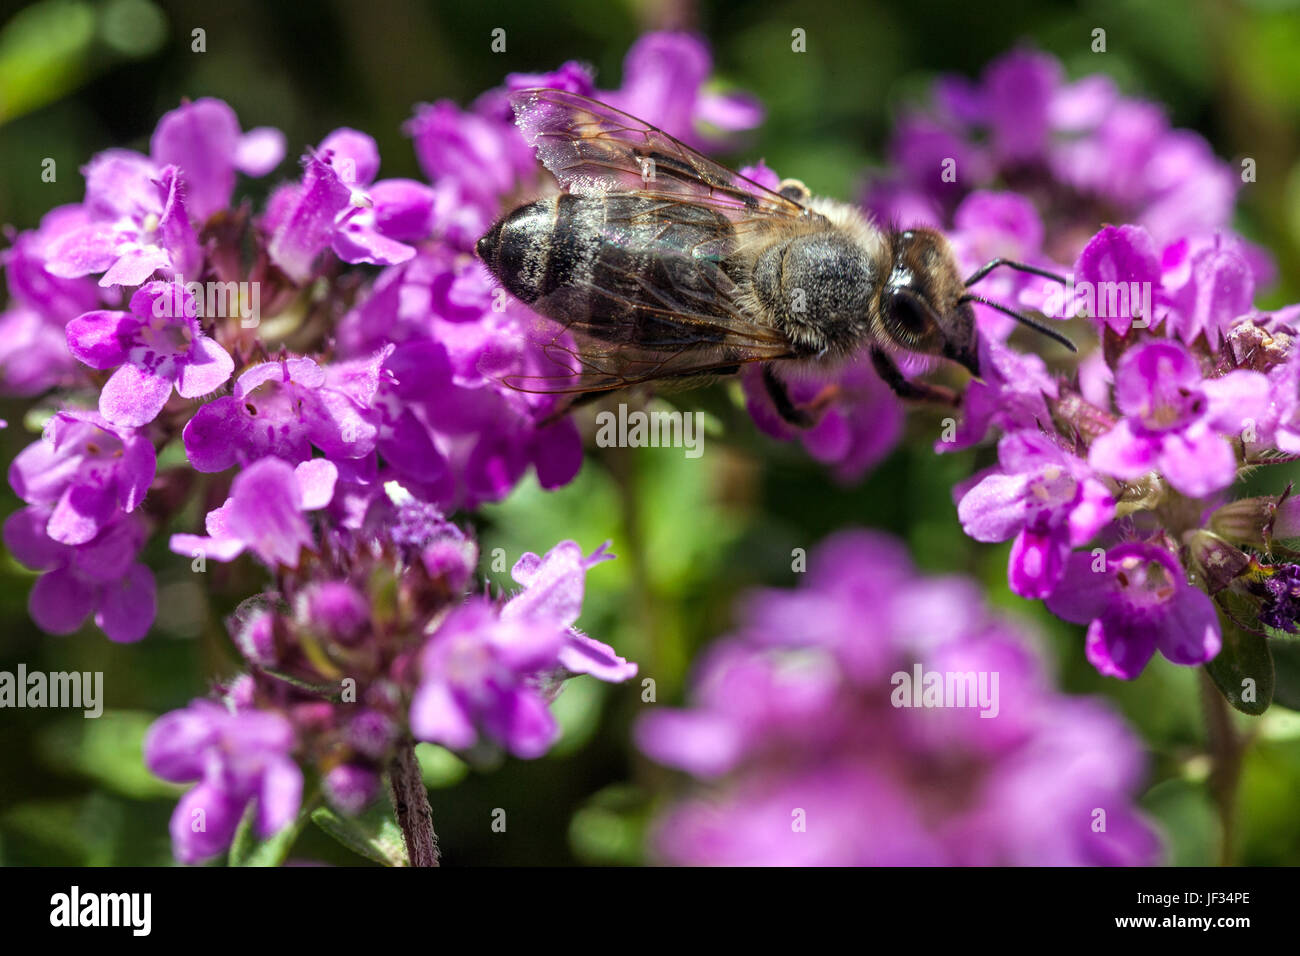 Bee on Thymus pulegioides 'Kurt', Broad-leaved thyme, Lemon thyme, pollination - Stock Image